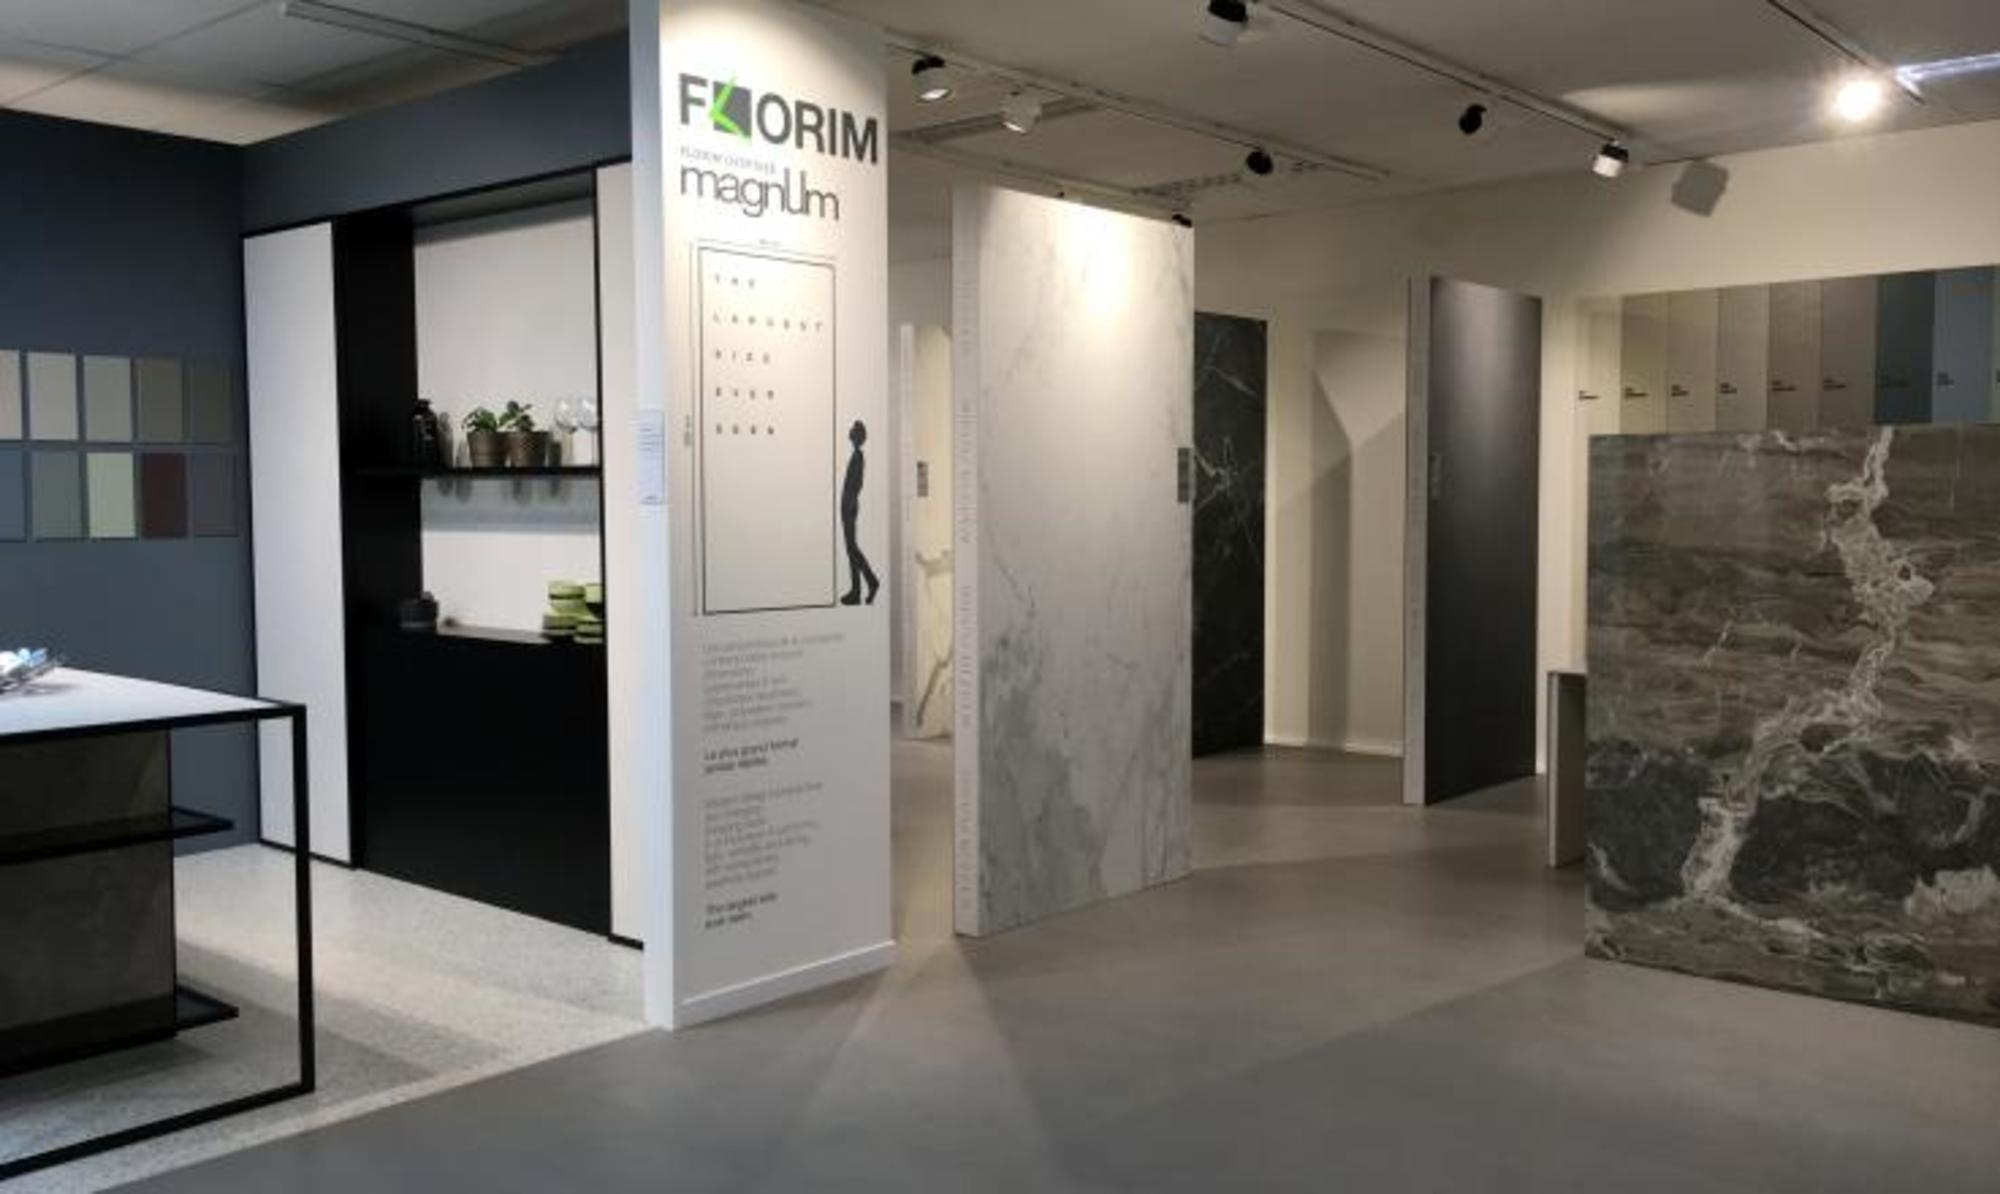 Gavra showroom Surfaces Antwerpen Geel Magnum Florim Stone